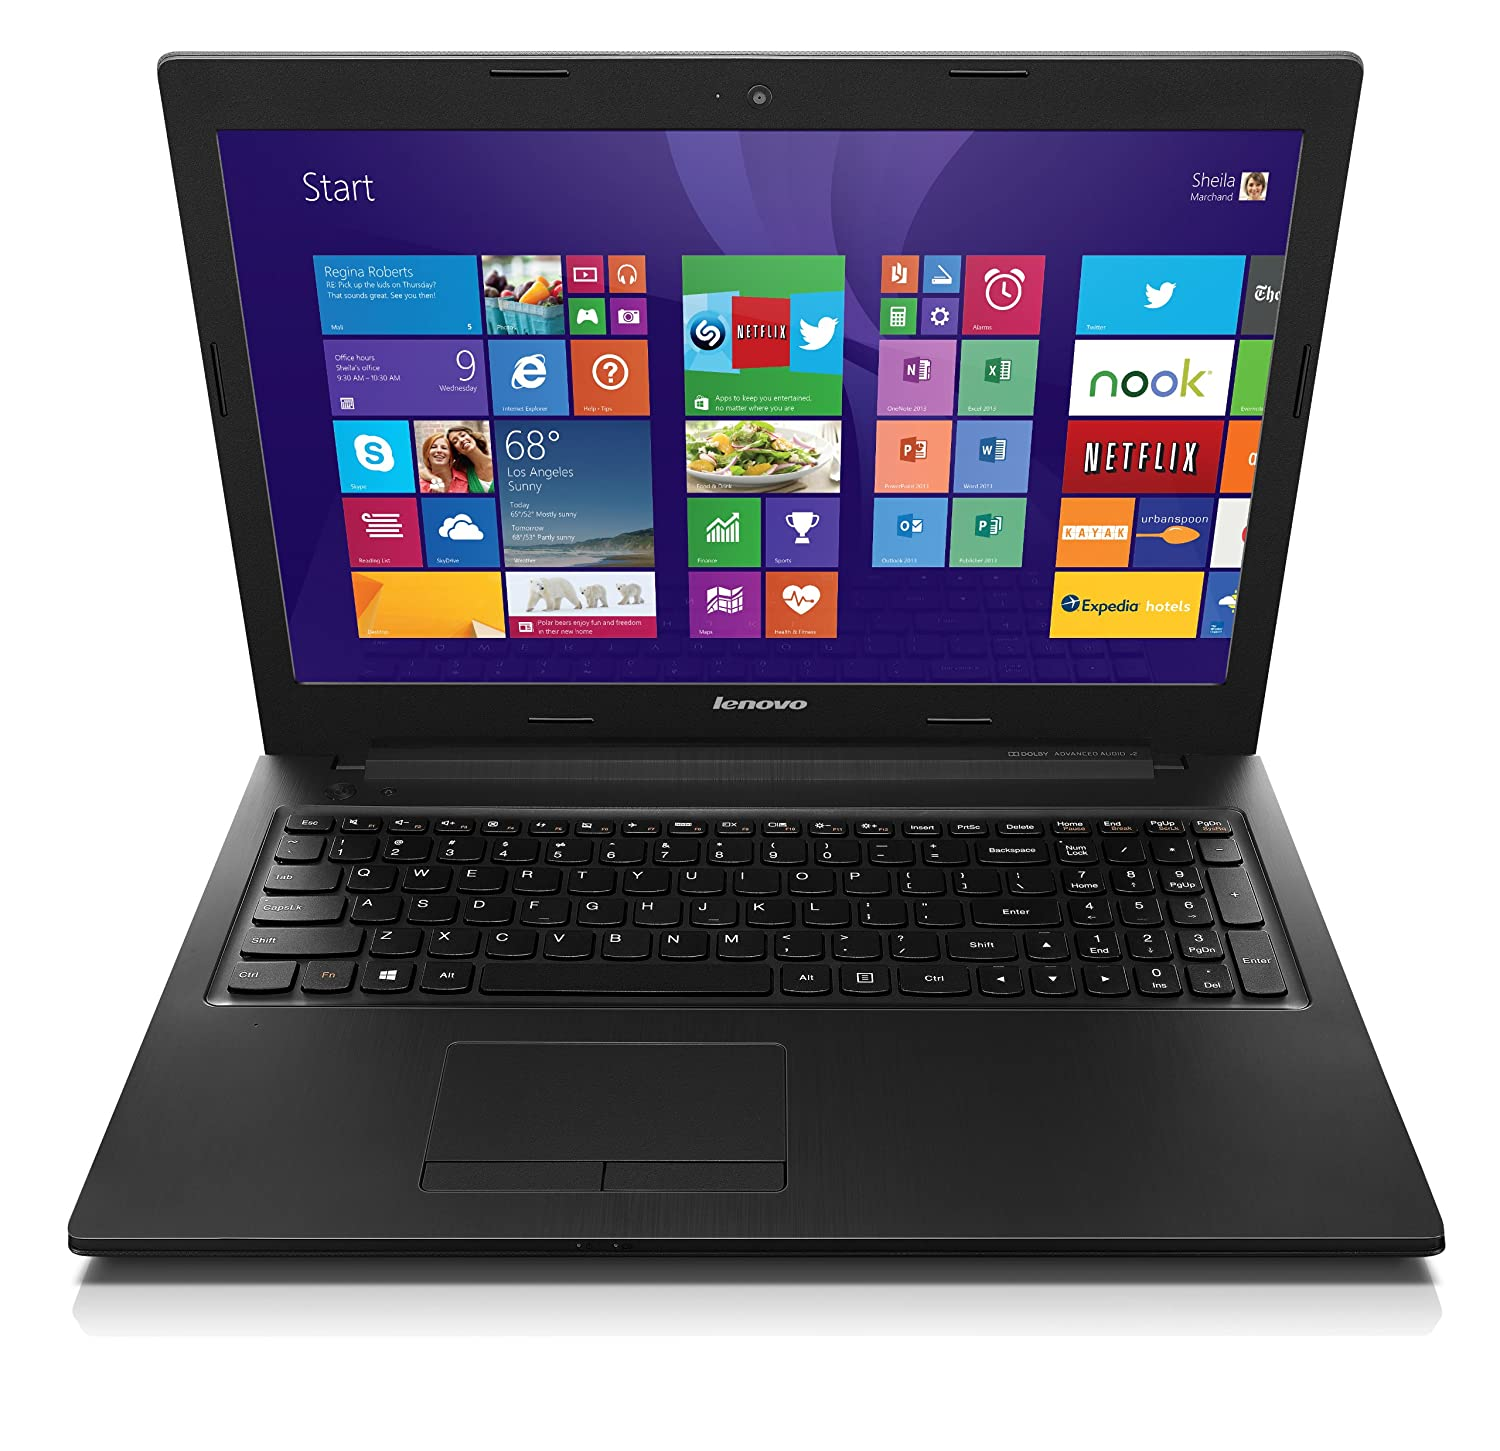 Price Lenovo 59407729 IdeaPad G710 17.3-Inch Laptop Reviews